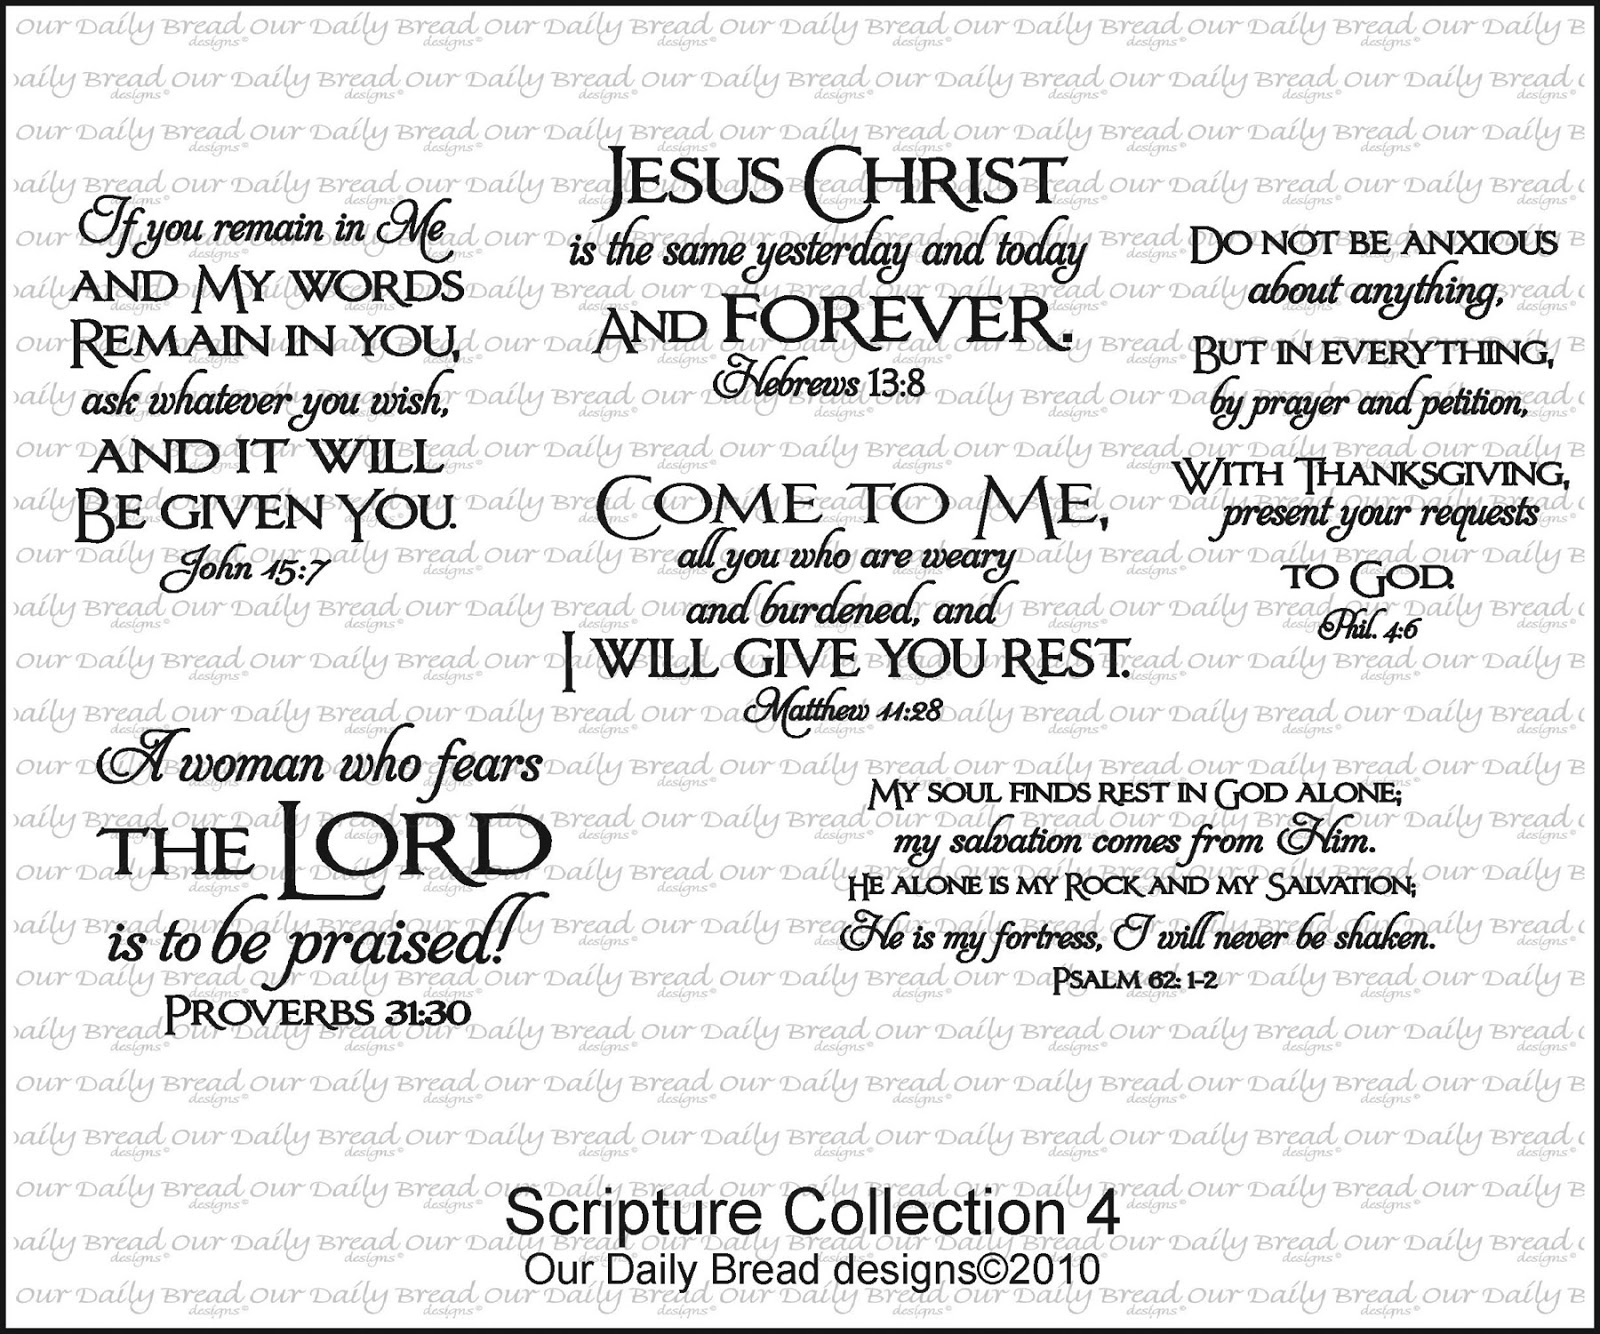 https://www.ourdailybreaddesigns.com/index.php/scripture-collection-4.html